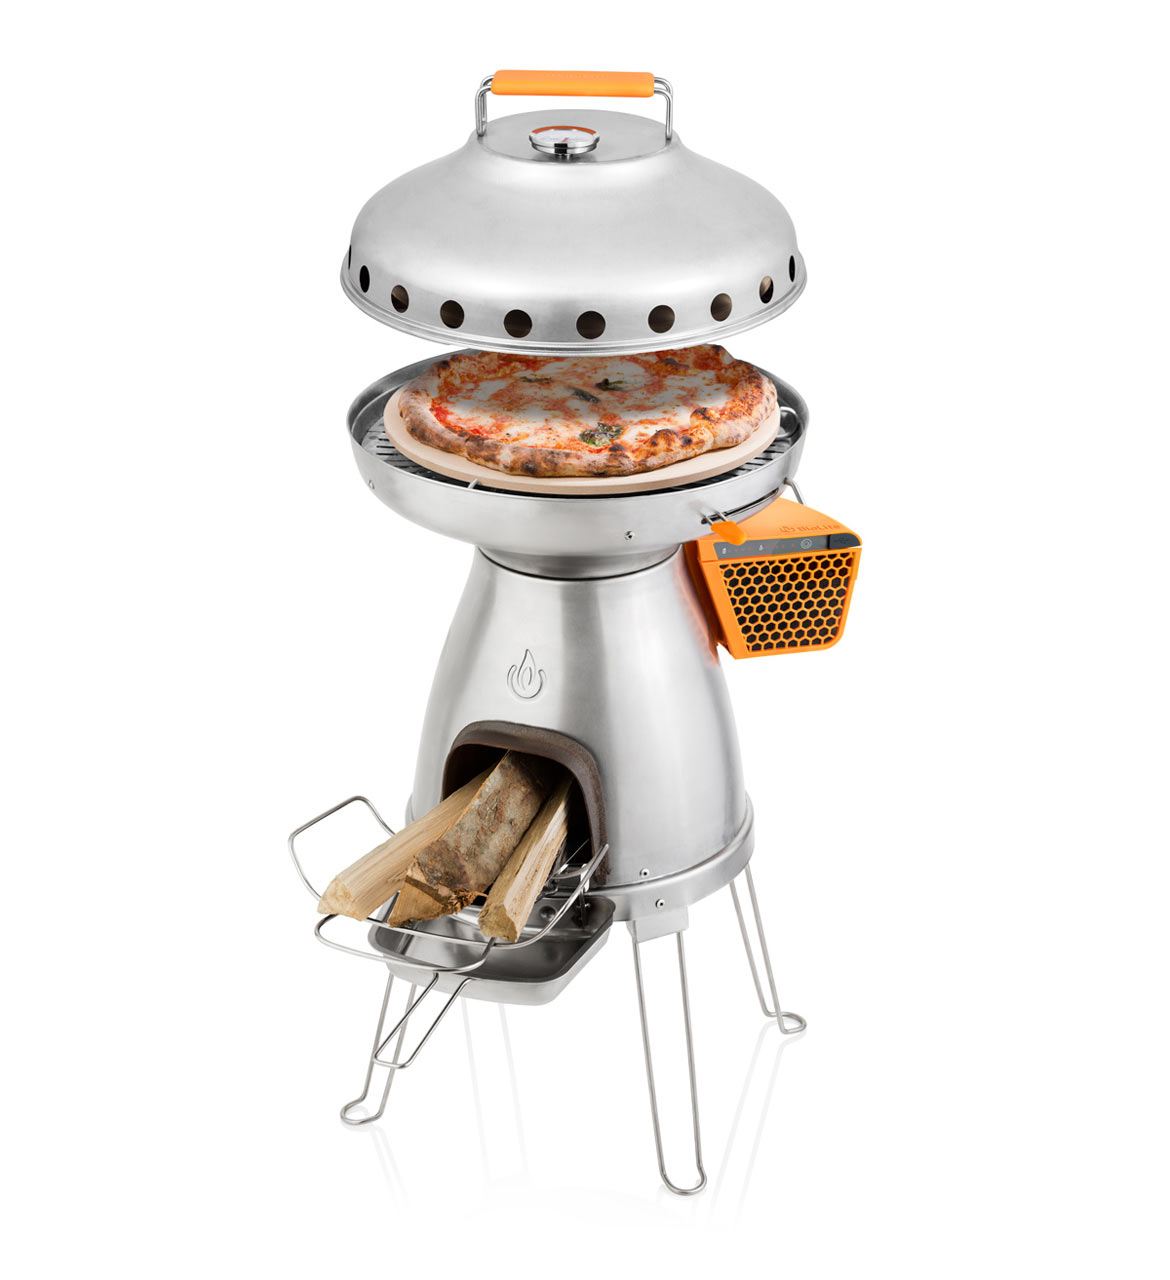 01-BaseCamp-is-a-wood-burning-stove-and-grill-that-converts-heat-into-usable-electricity